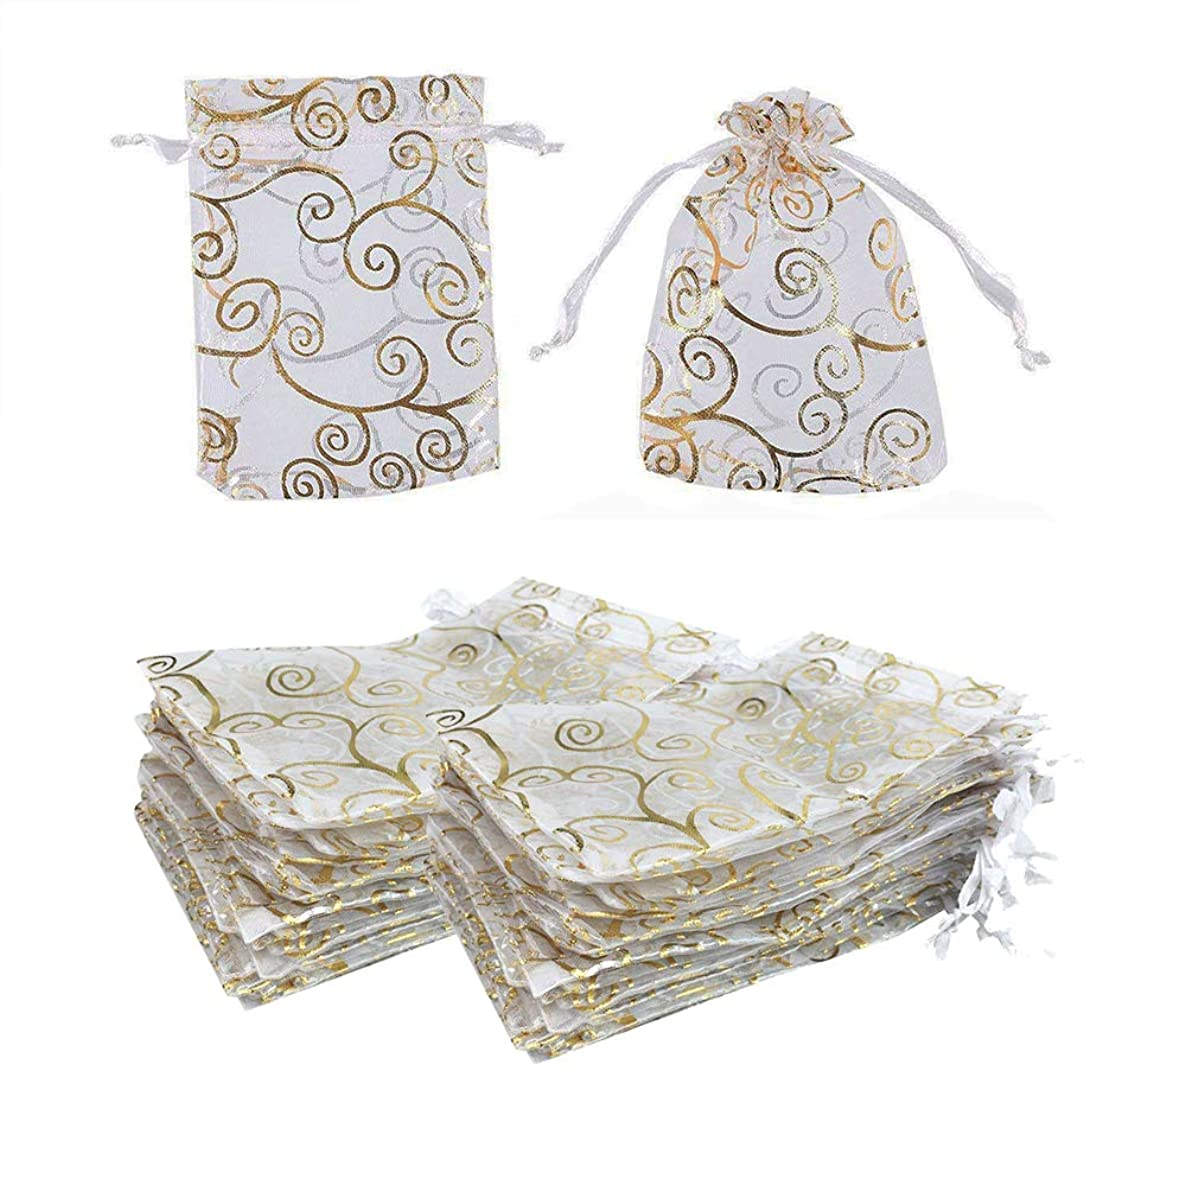 100pcs Organza Drawstring Pouches Candy Jewelry Mesh Favor Bags Wedding Christmas Party Gift Bags,3.5x4.7 Inches (Gold White)